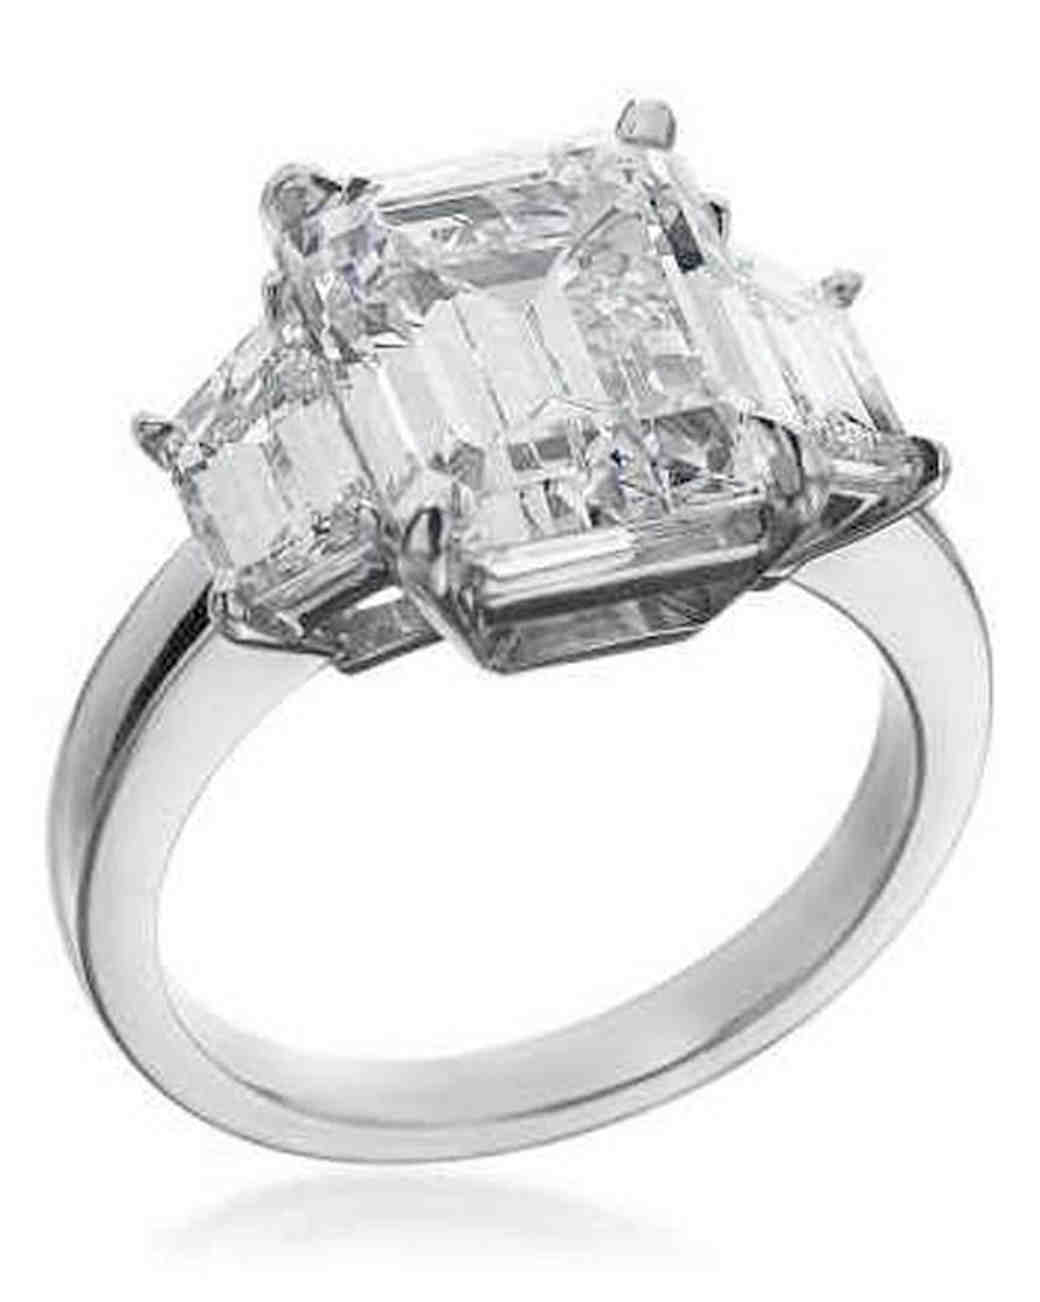 Michael C. Fina Emerald-Cut Engagement Ring